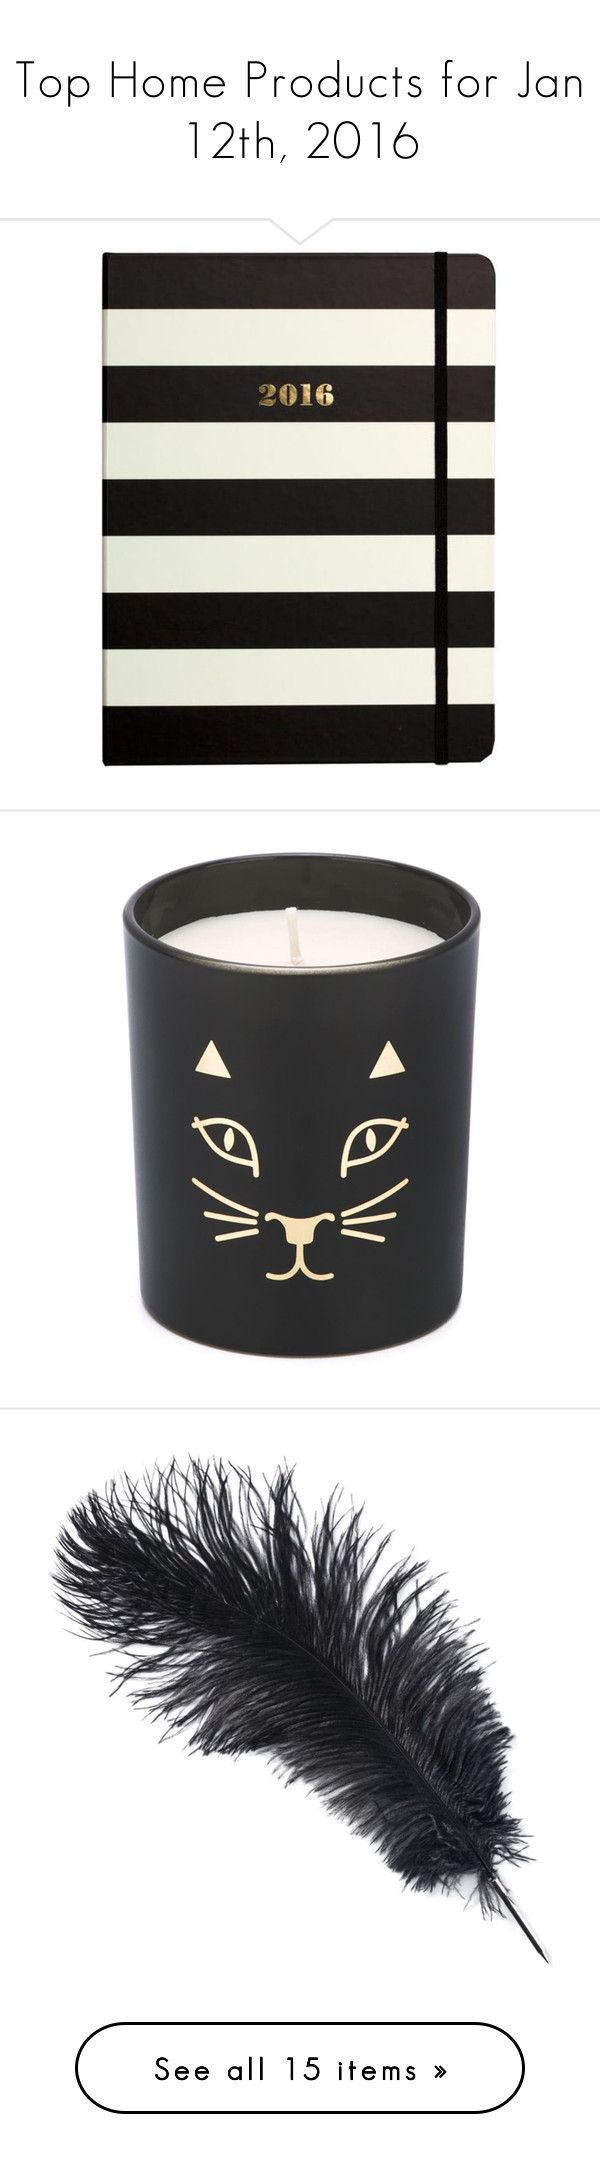 """""""Top Home Products for Jan 12th, 2016"""" by polyvore ❤ liked on Polyvore featuring home, home decor, stationery, black stripe, candles & candleholders, fillers, candles, black, cat candle and cat home decor"""